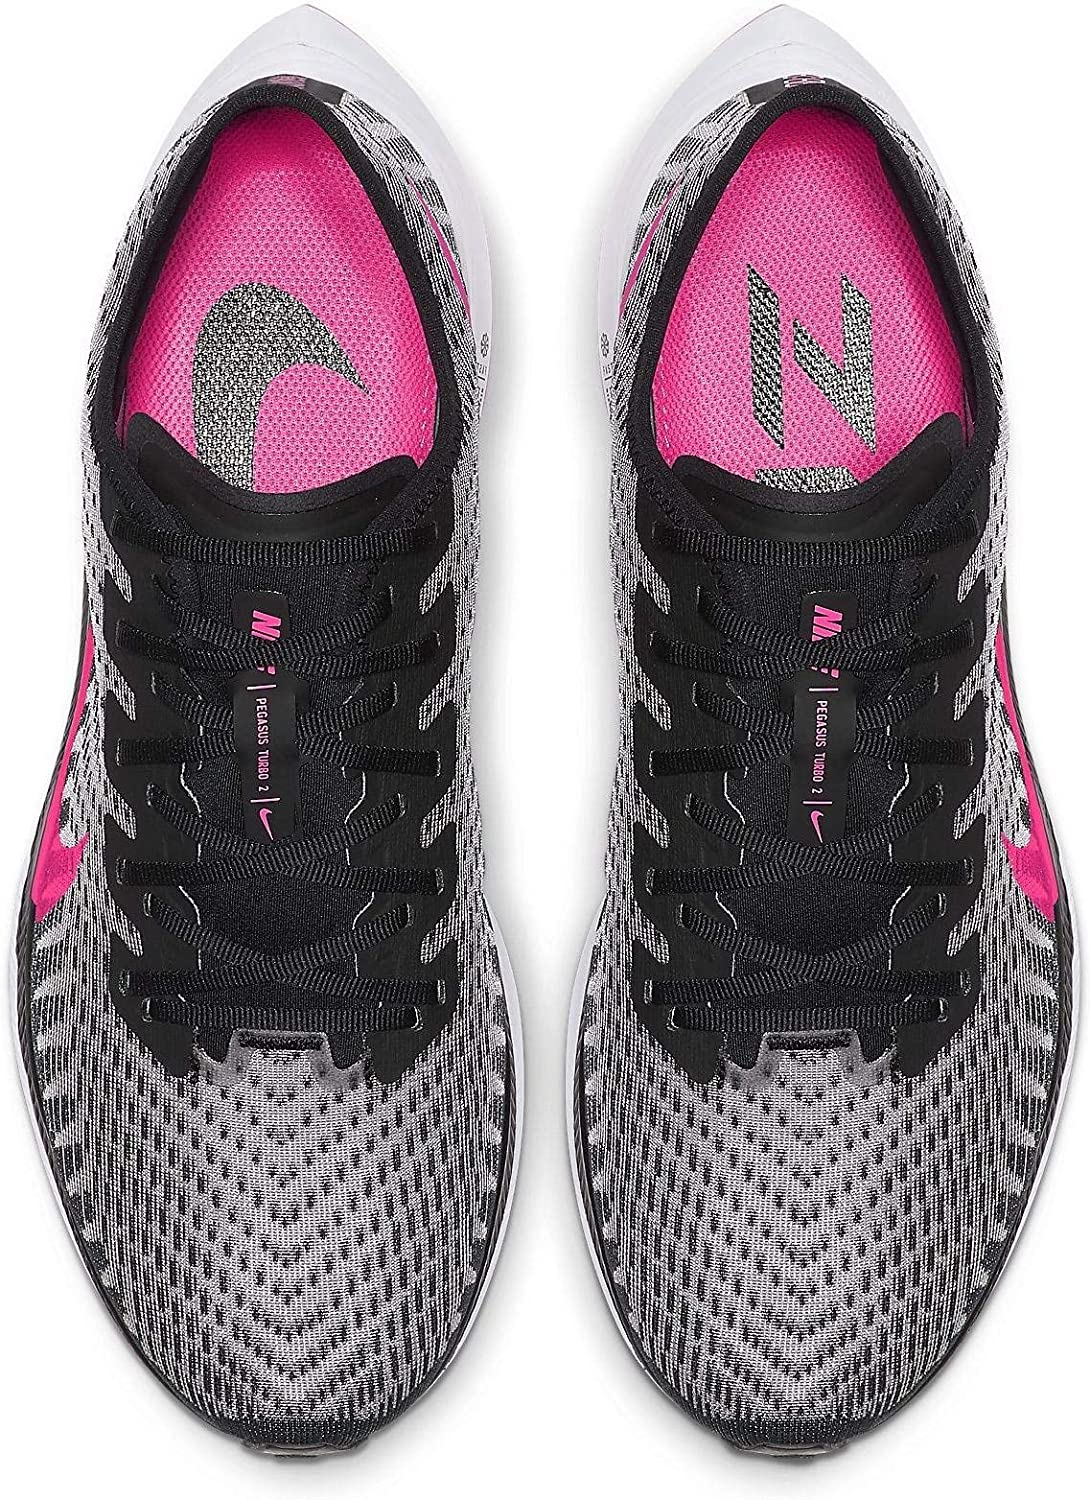 NIKE Zoom Pegasus Turbo 2, Running Shoe para Hombre: Amazon.es: Zapatos y complementos